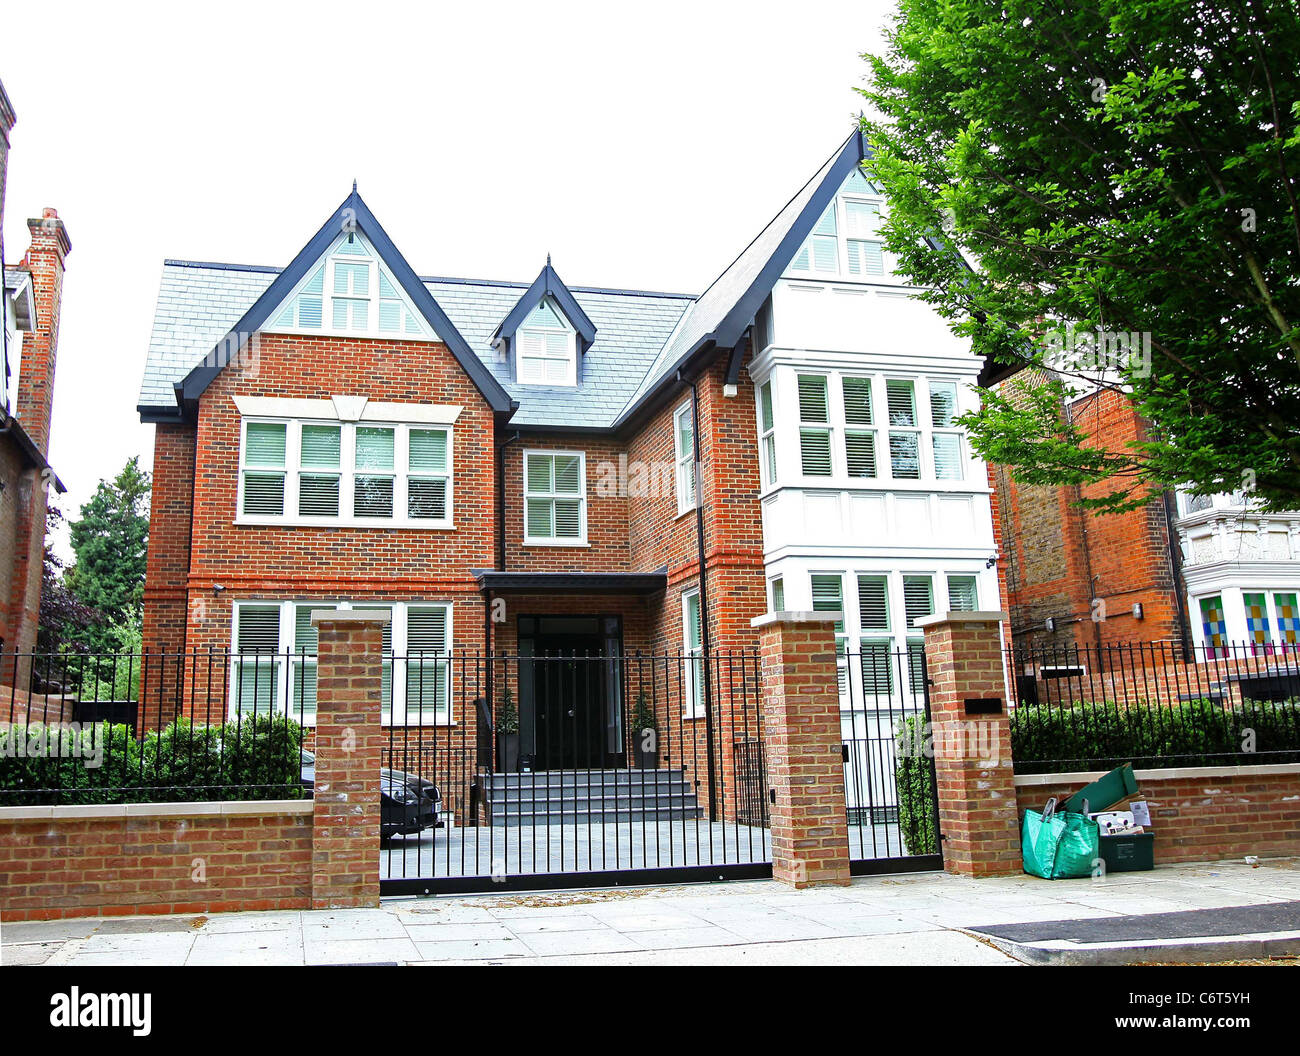 Declan donnelly recently completed house london england for Donnelly house